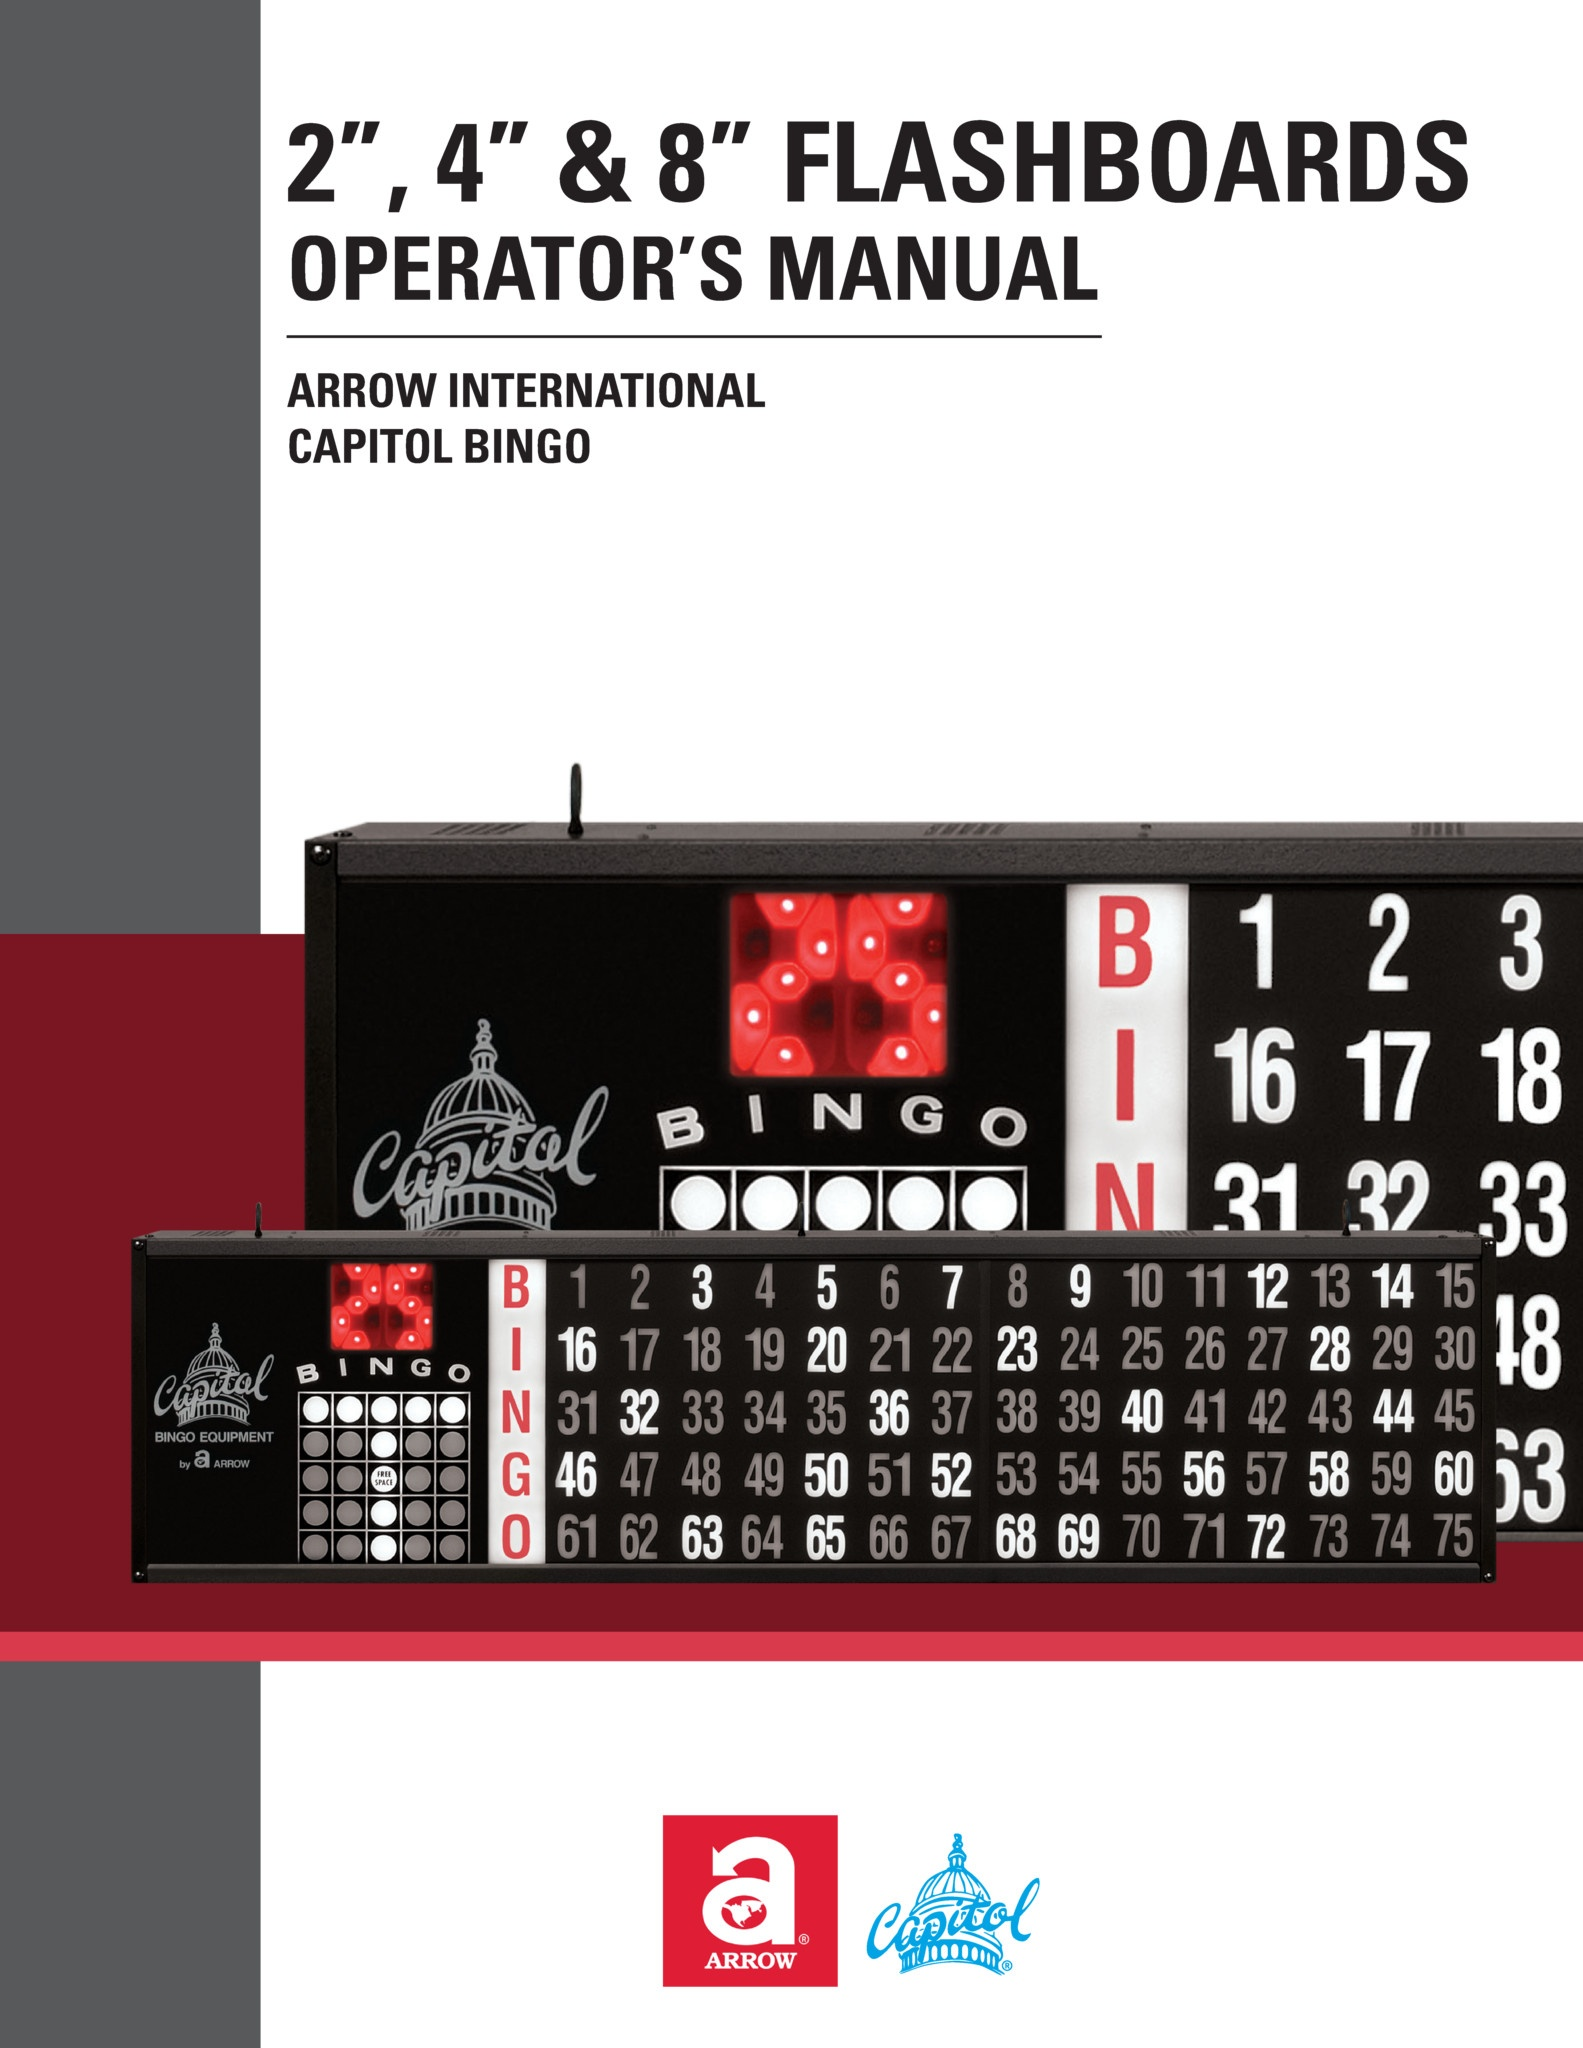 Flashboard Manual Equipment Manuals